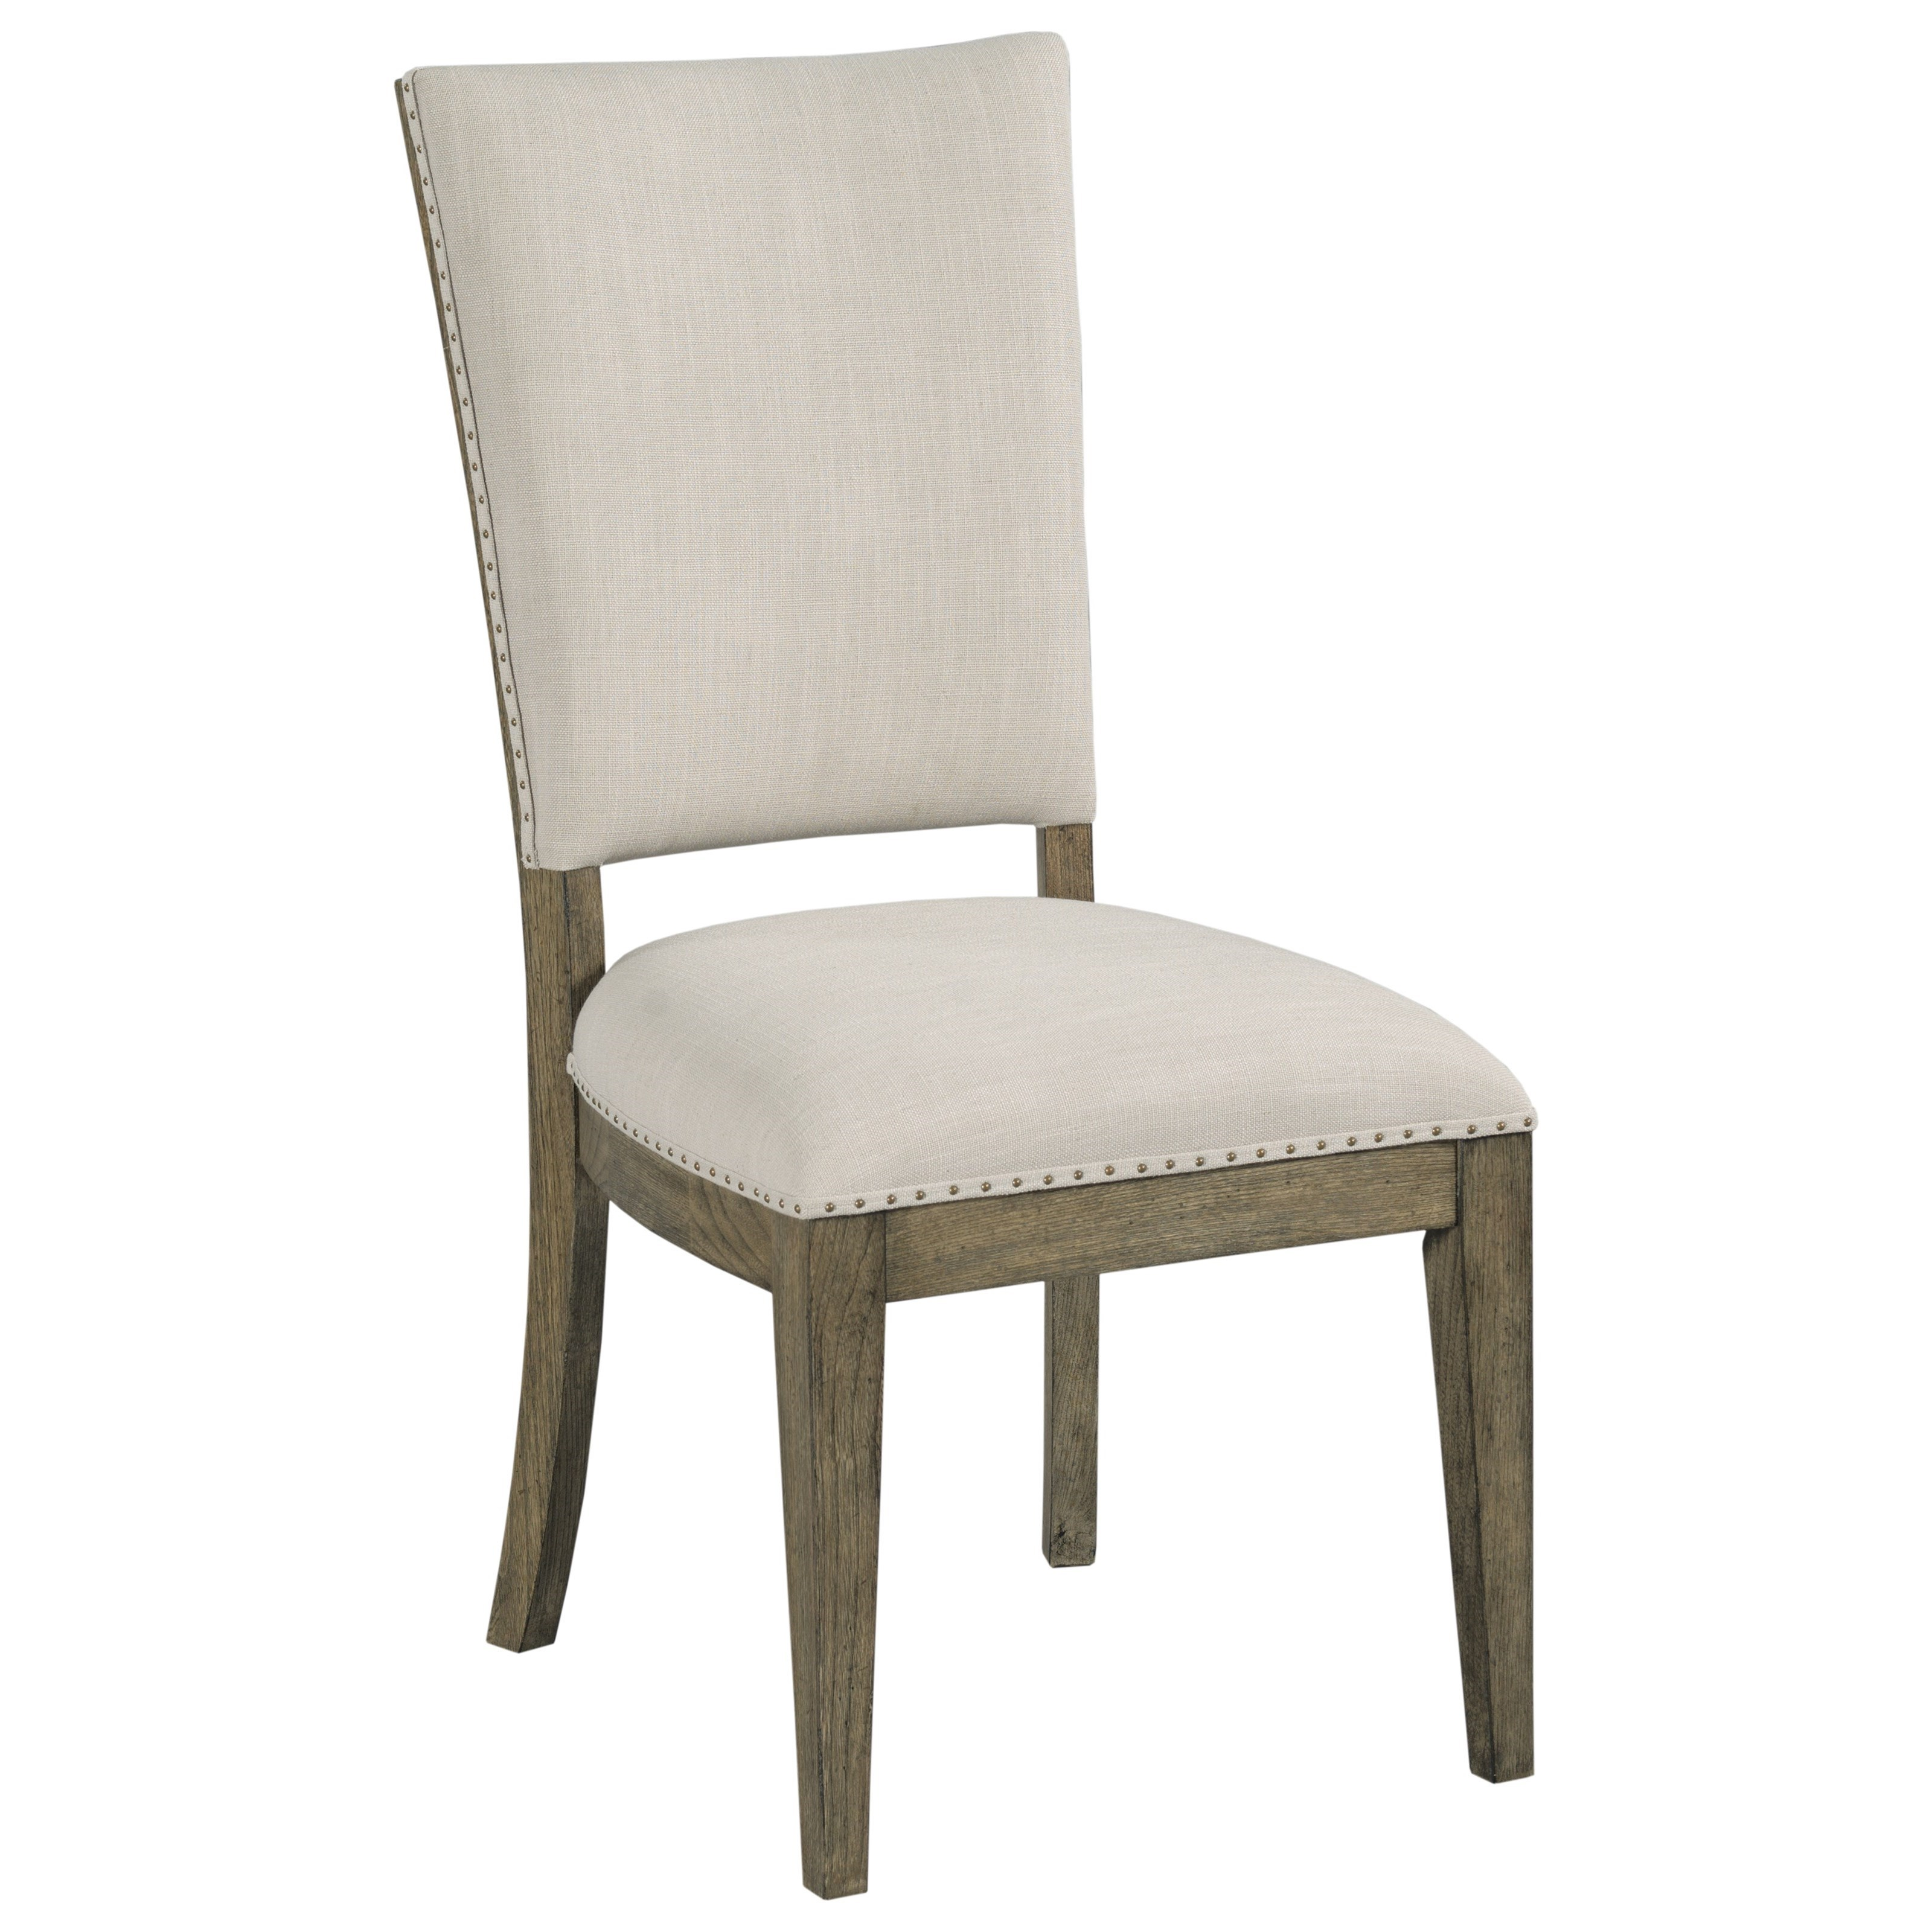 Plank Road Howell Side Chair                            at Stoney Creek Furniture